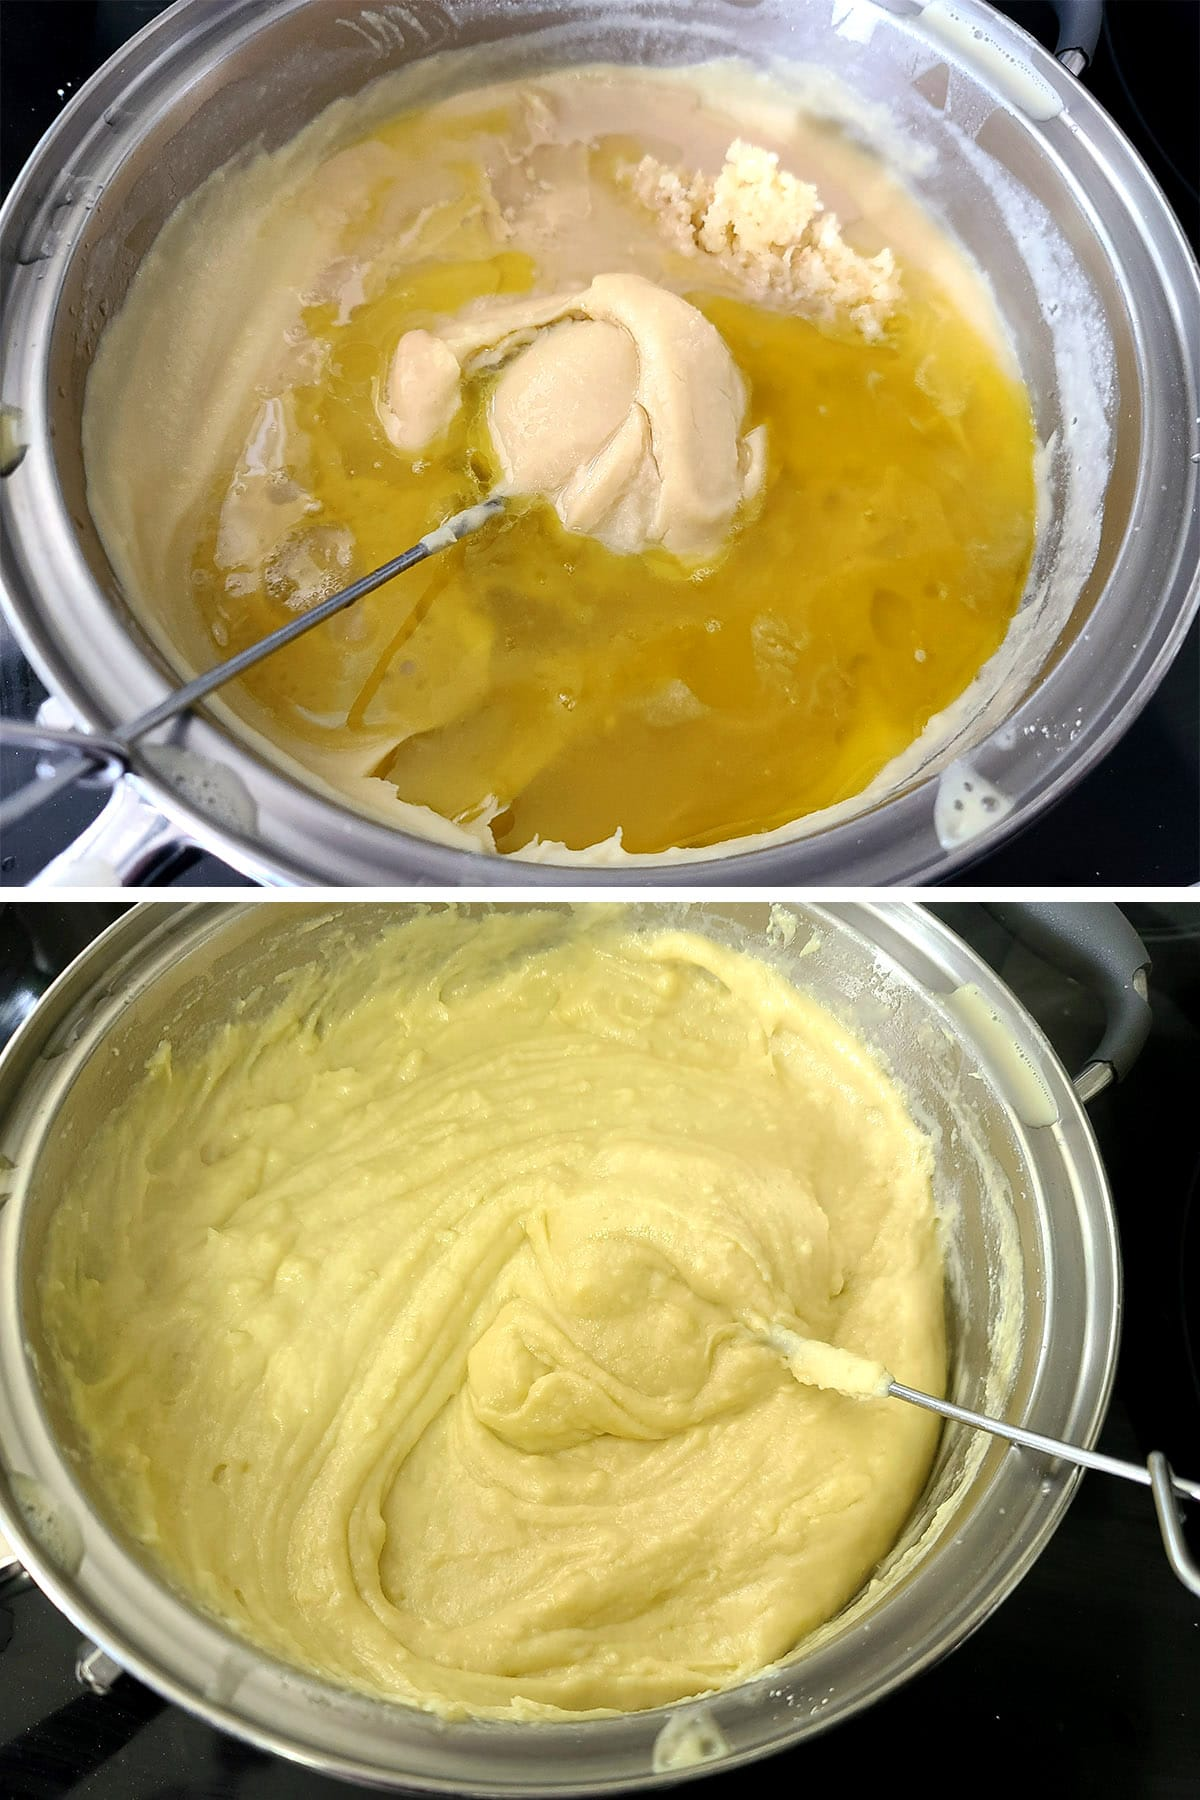 Tahini, lemon juice, and olive oil being added to the pot of hummus and mixed in.